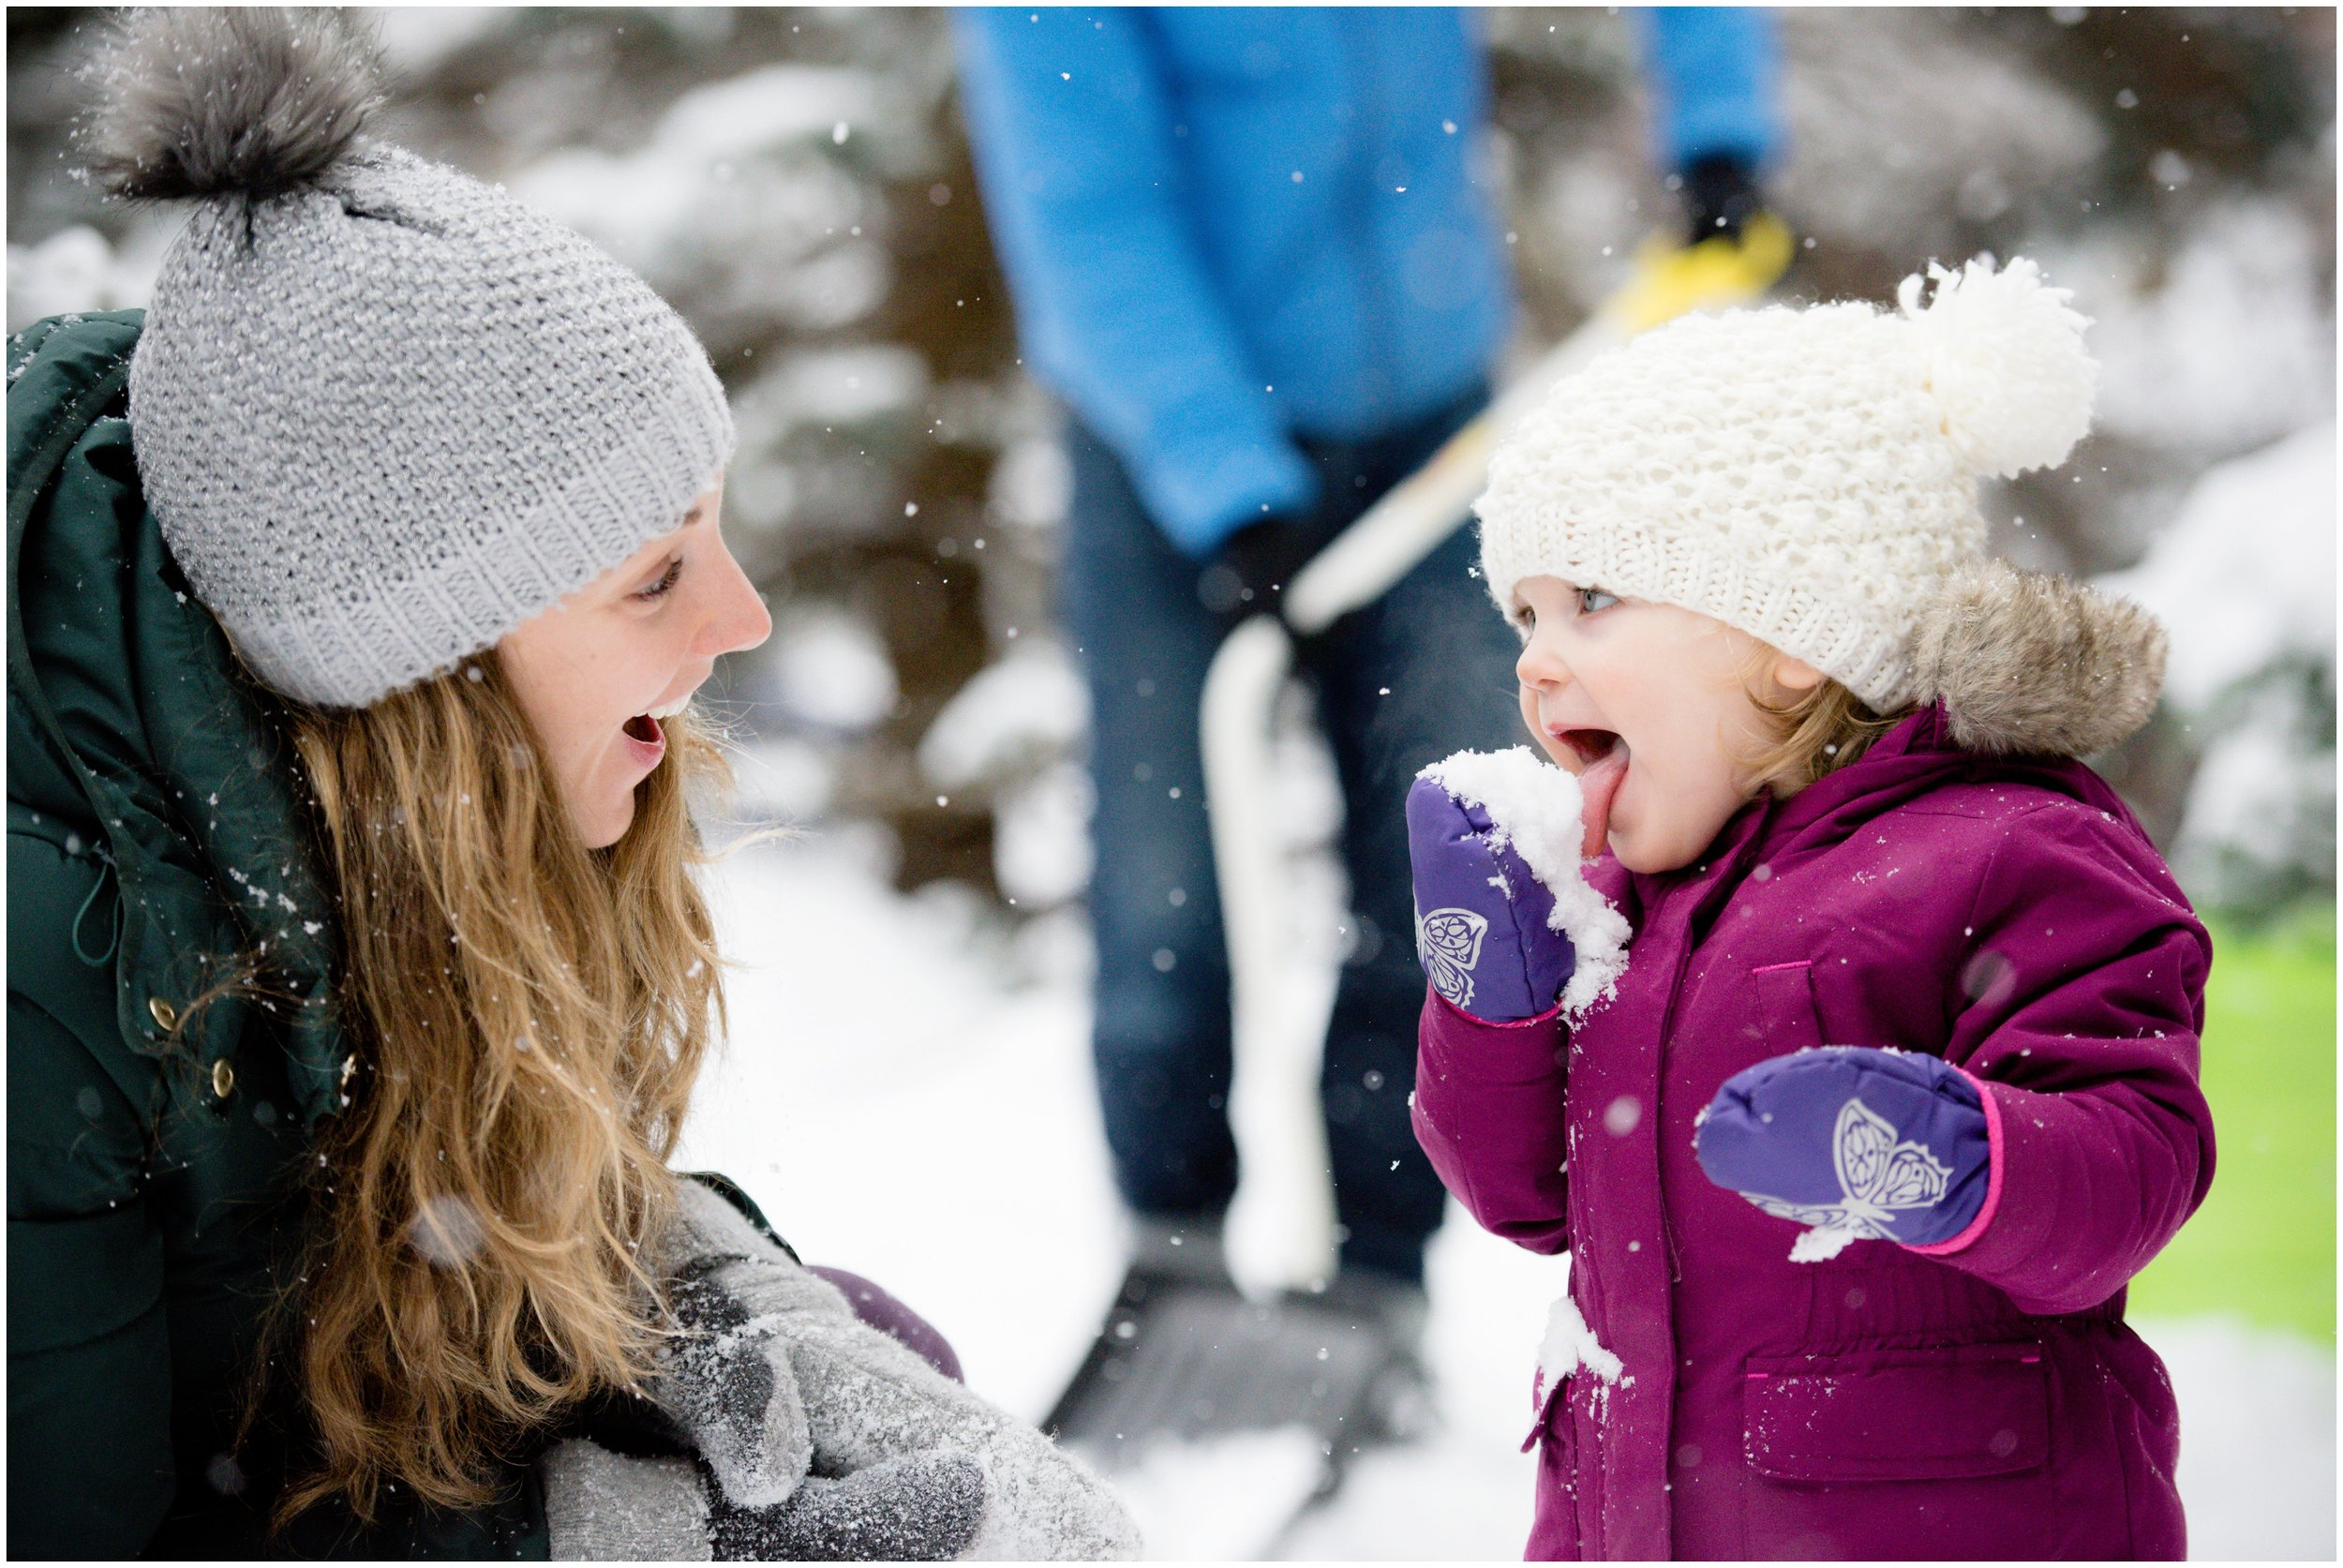 Mom and daughter in snow